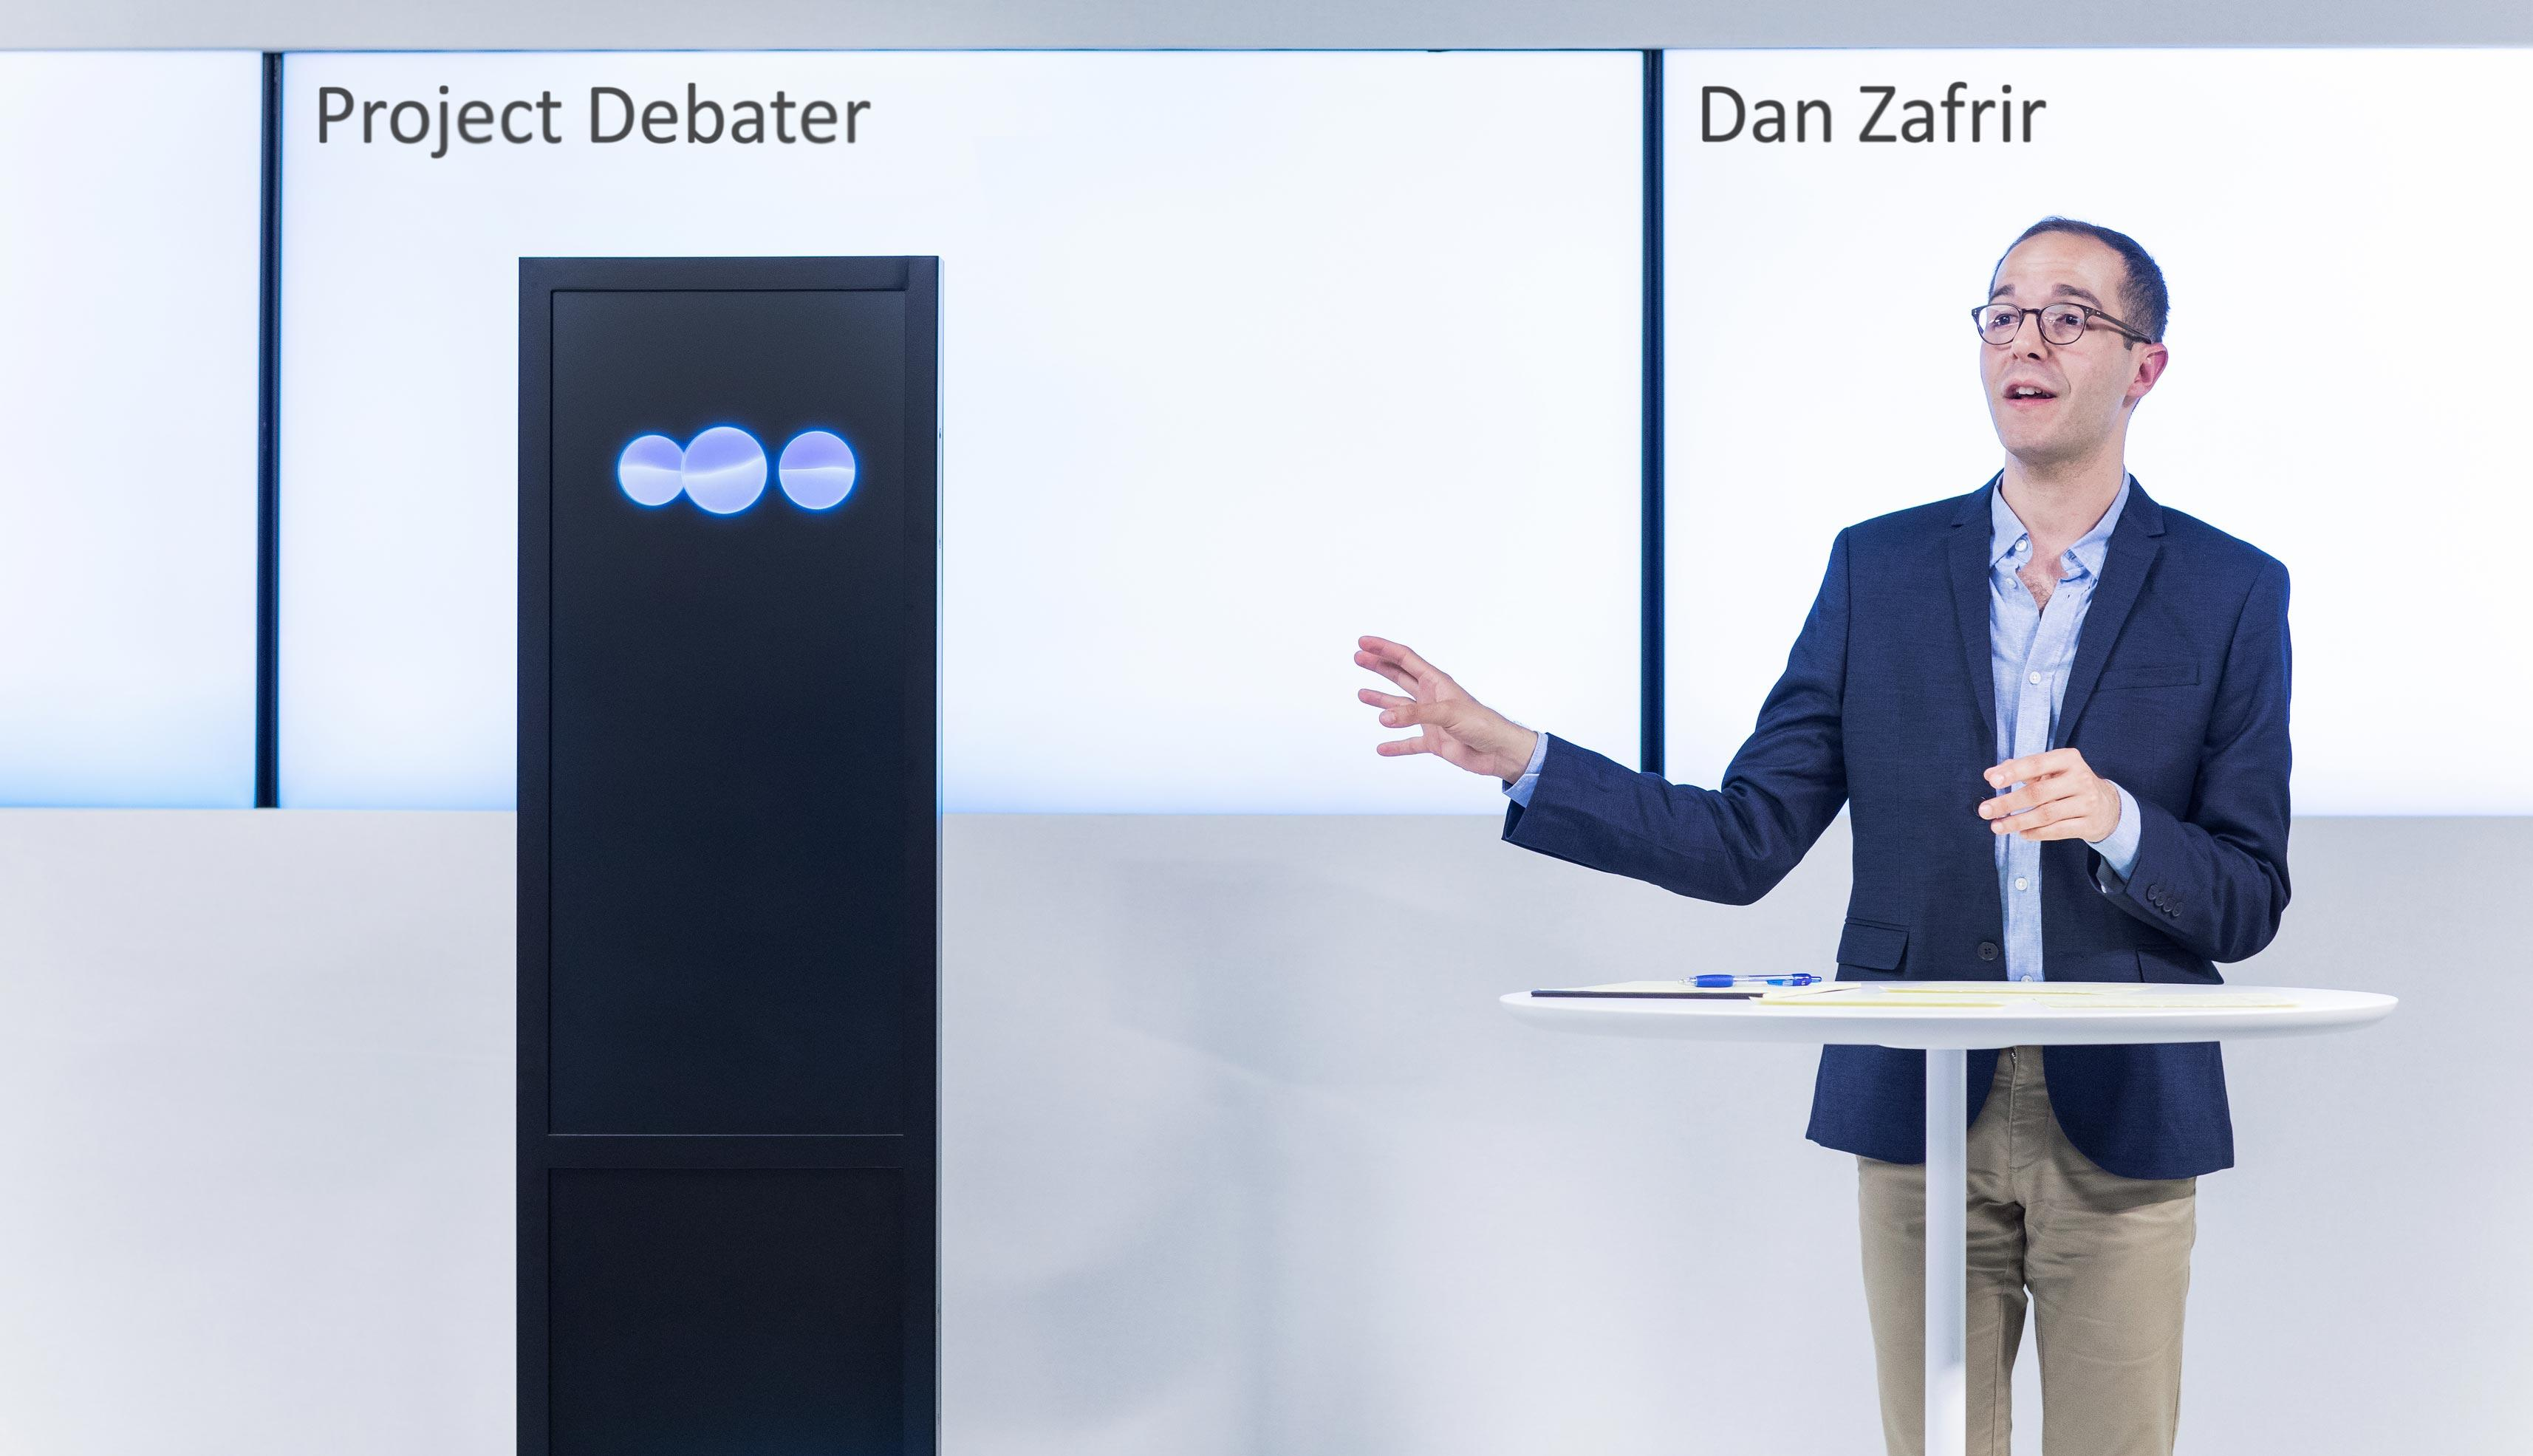 IBM's AI defeated a human in a debate and we're all doomed